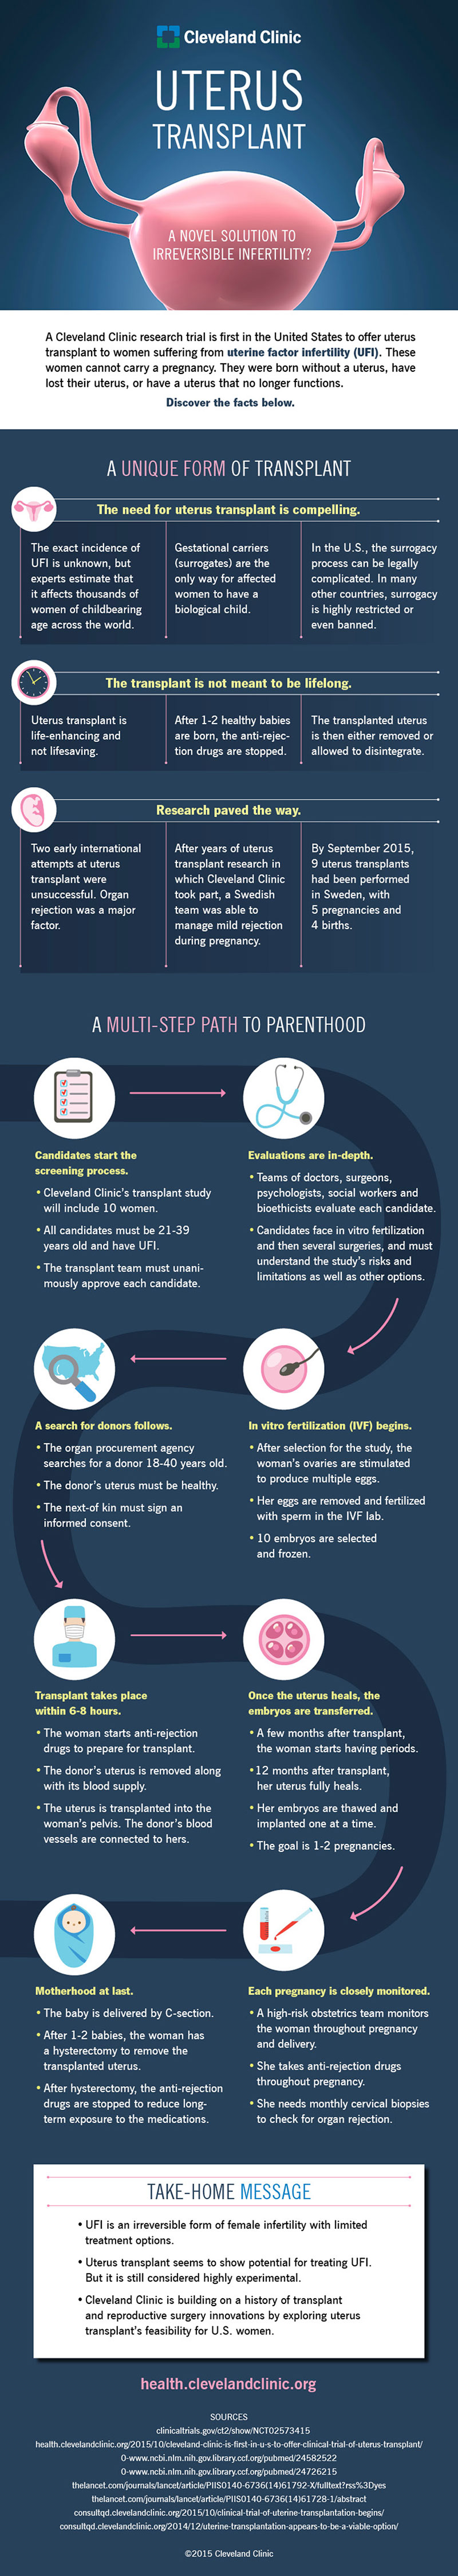 Uterus-Transplant-Know-the-Facts-Cleveland-Clinic.jpg